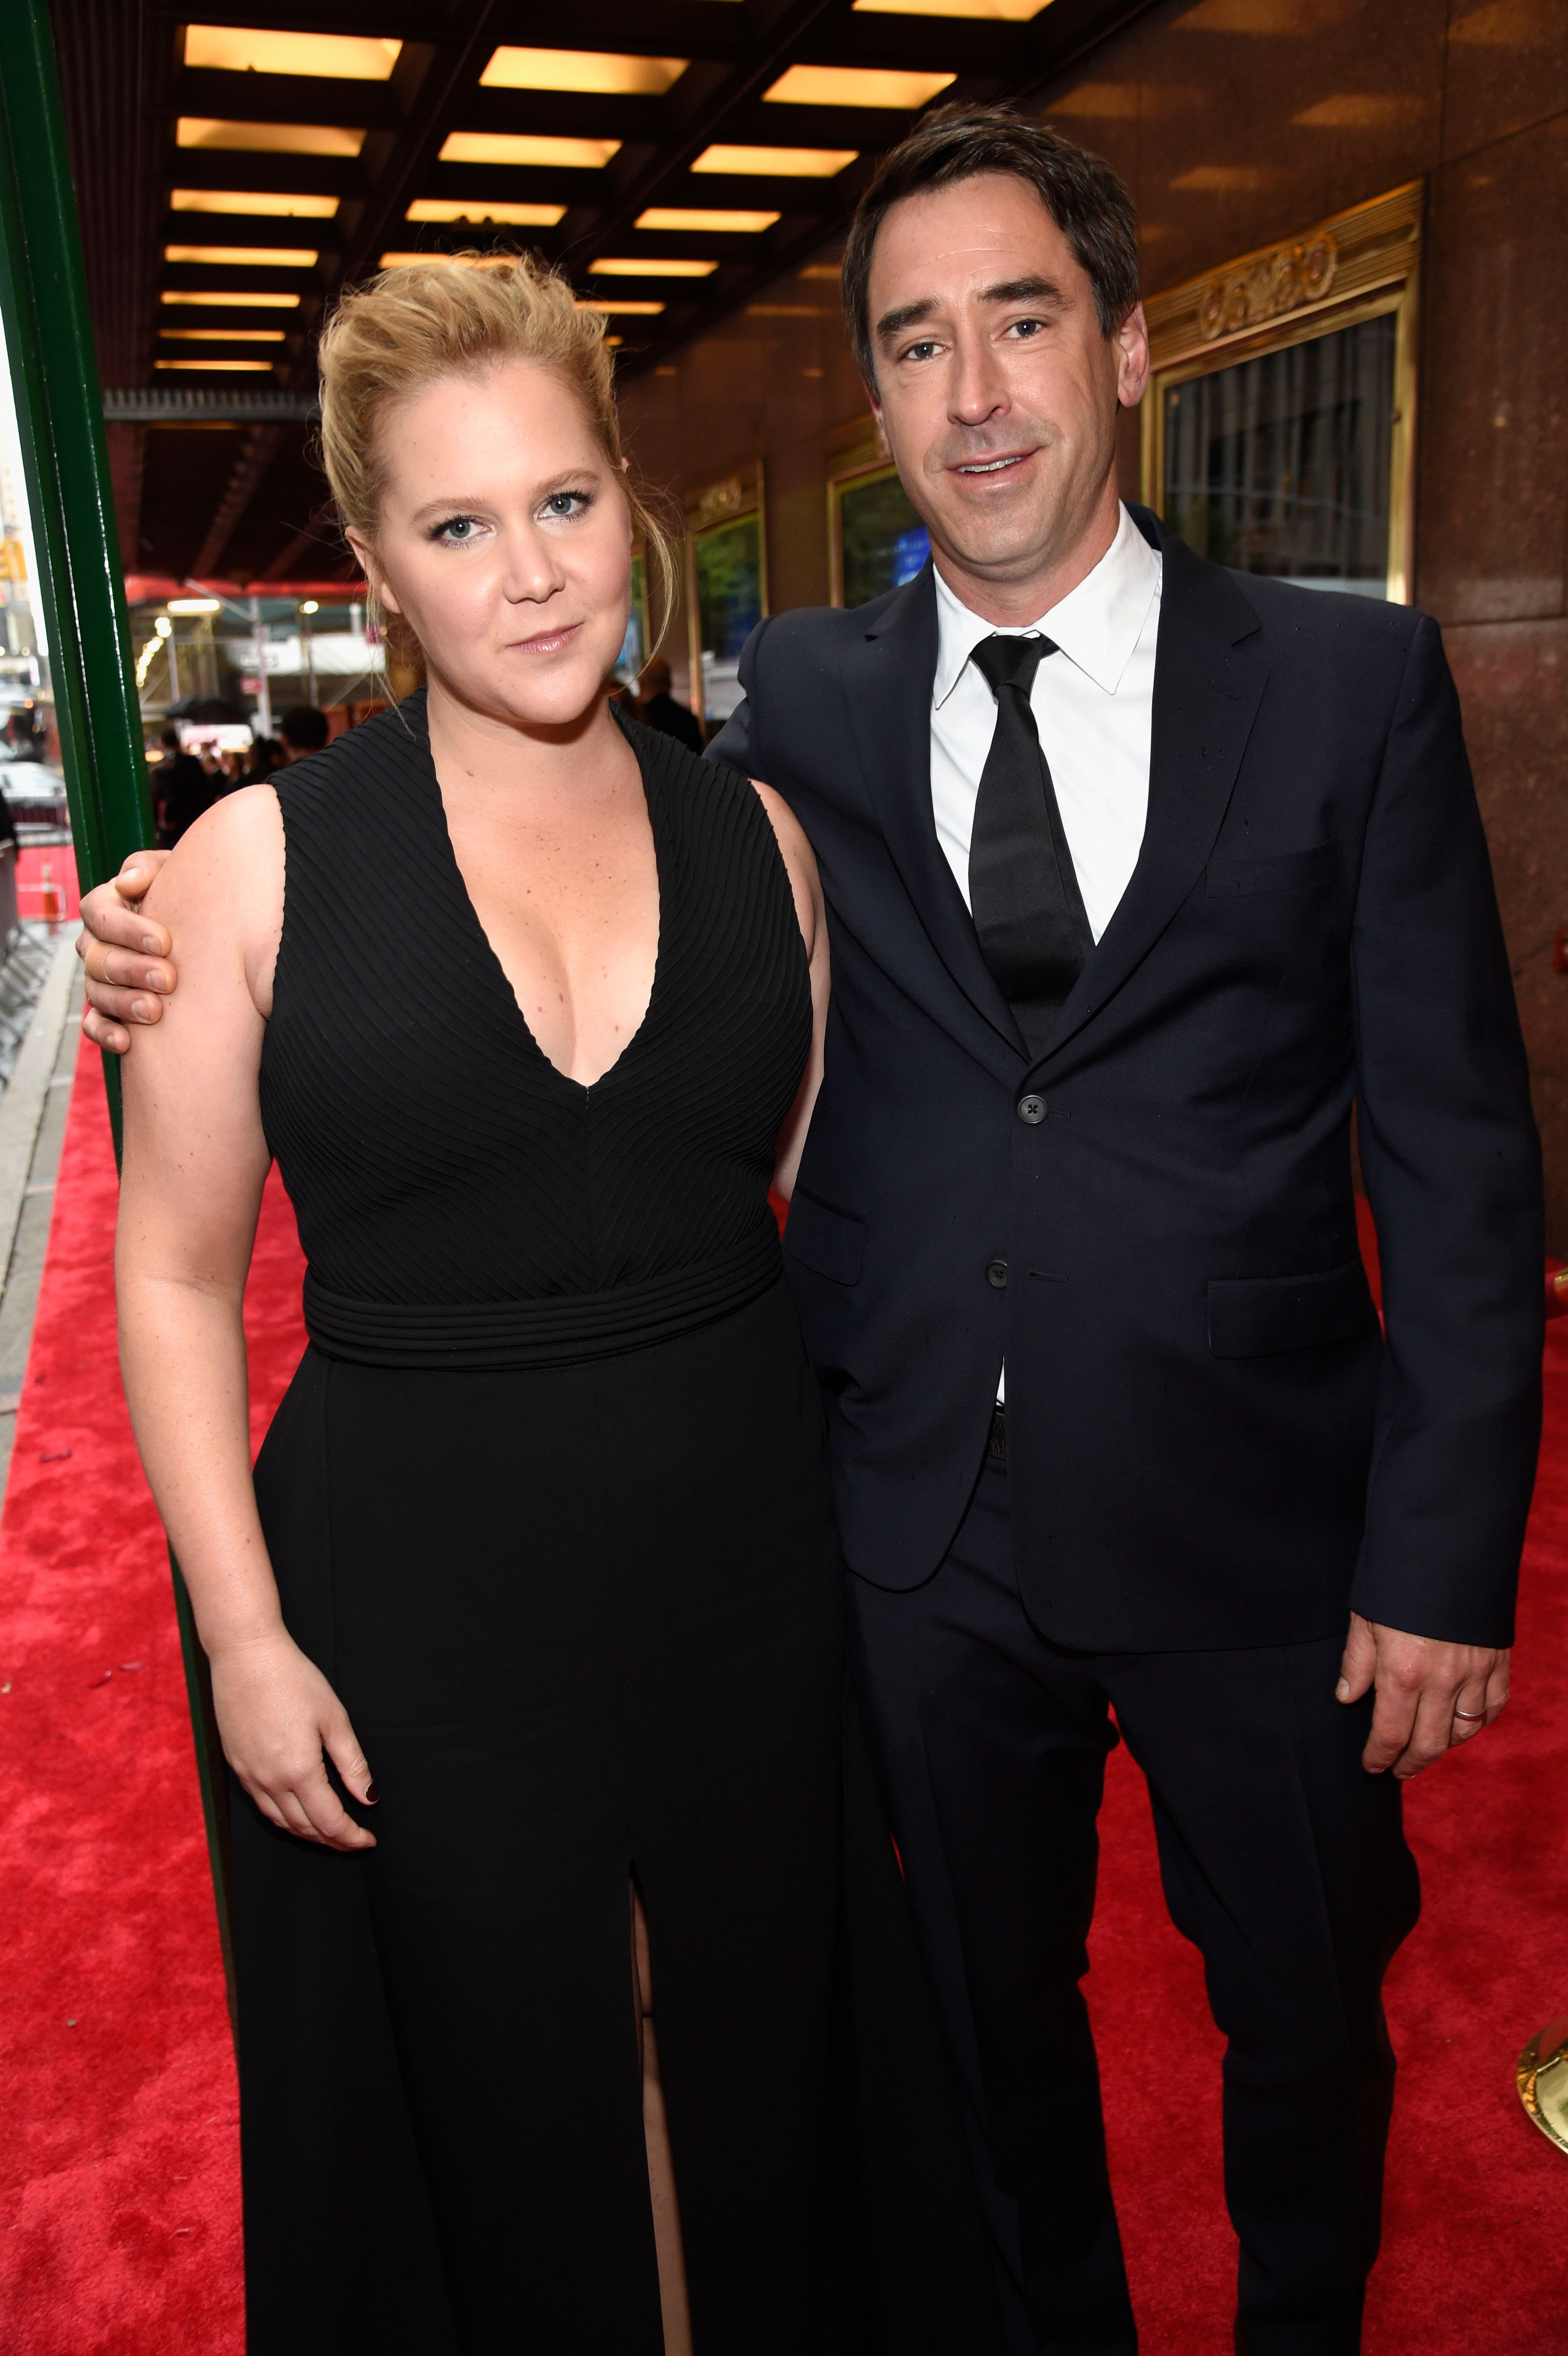 Amy Schumer Jokes About Her Pregnancy Glow With IV Drip In Hand